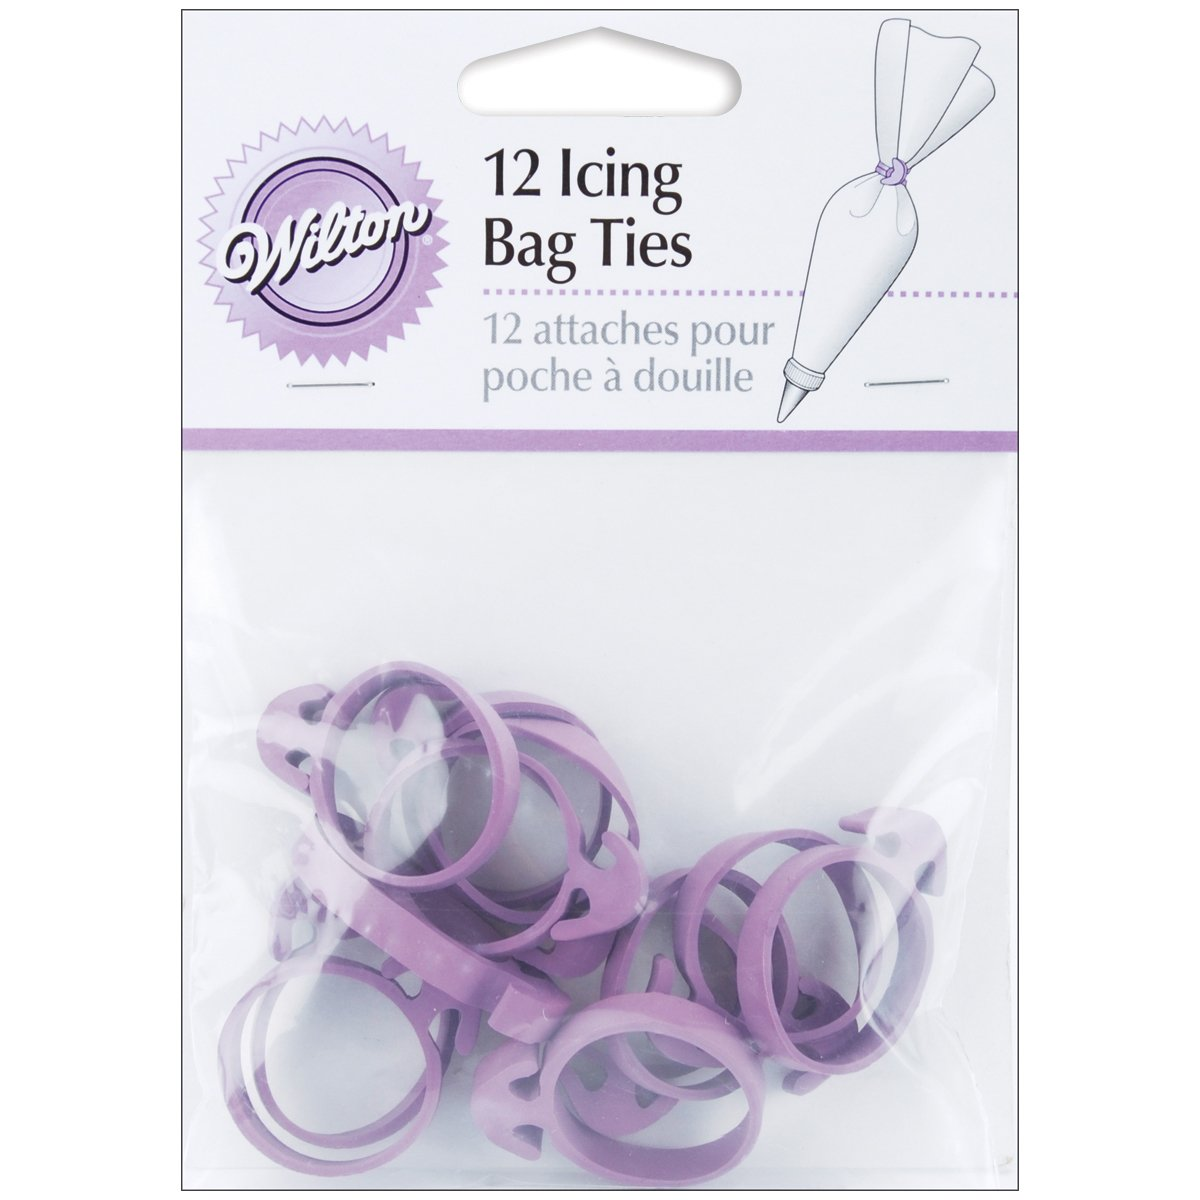 Wilton Icing Bag Ties, 12 count bag